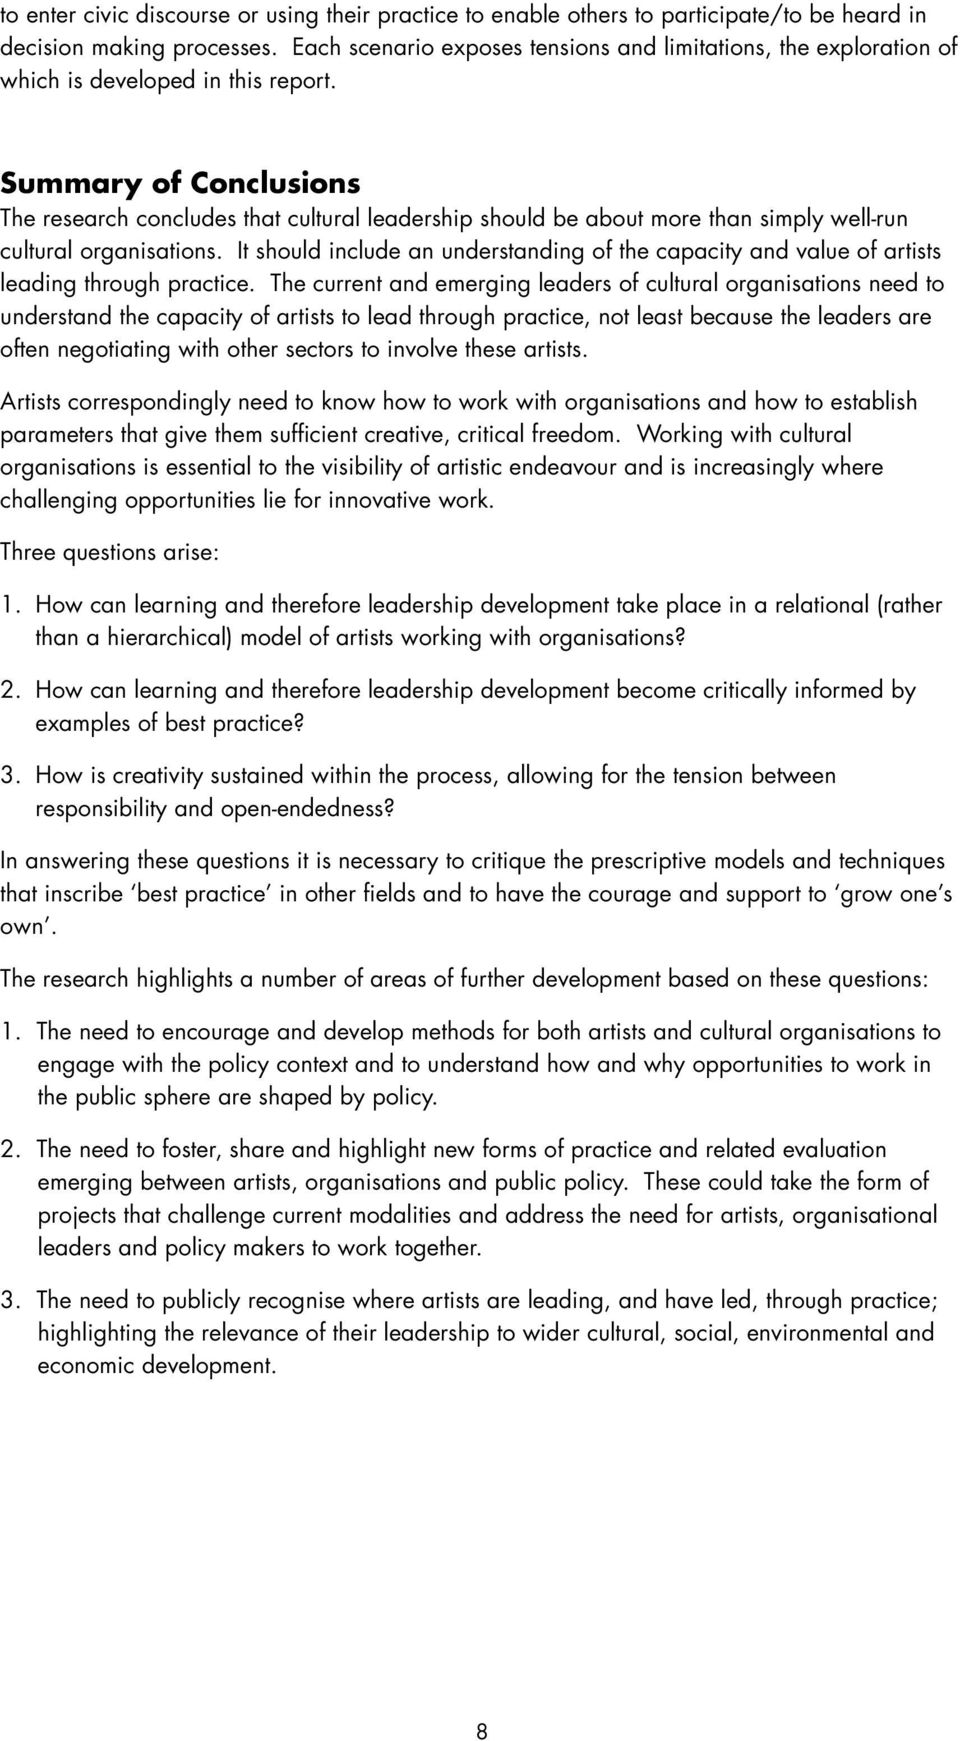 Summary of Conclusions The research concludes that cultural leadership should be about more than simply well-run cultural organisations.